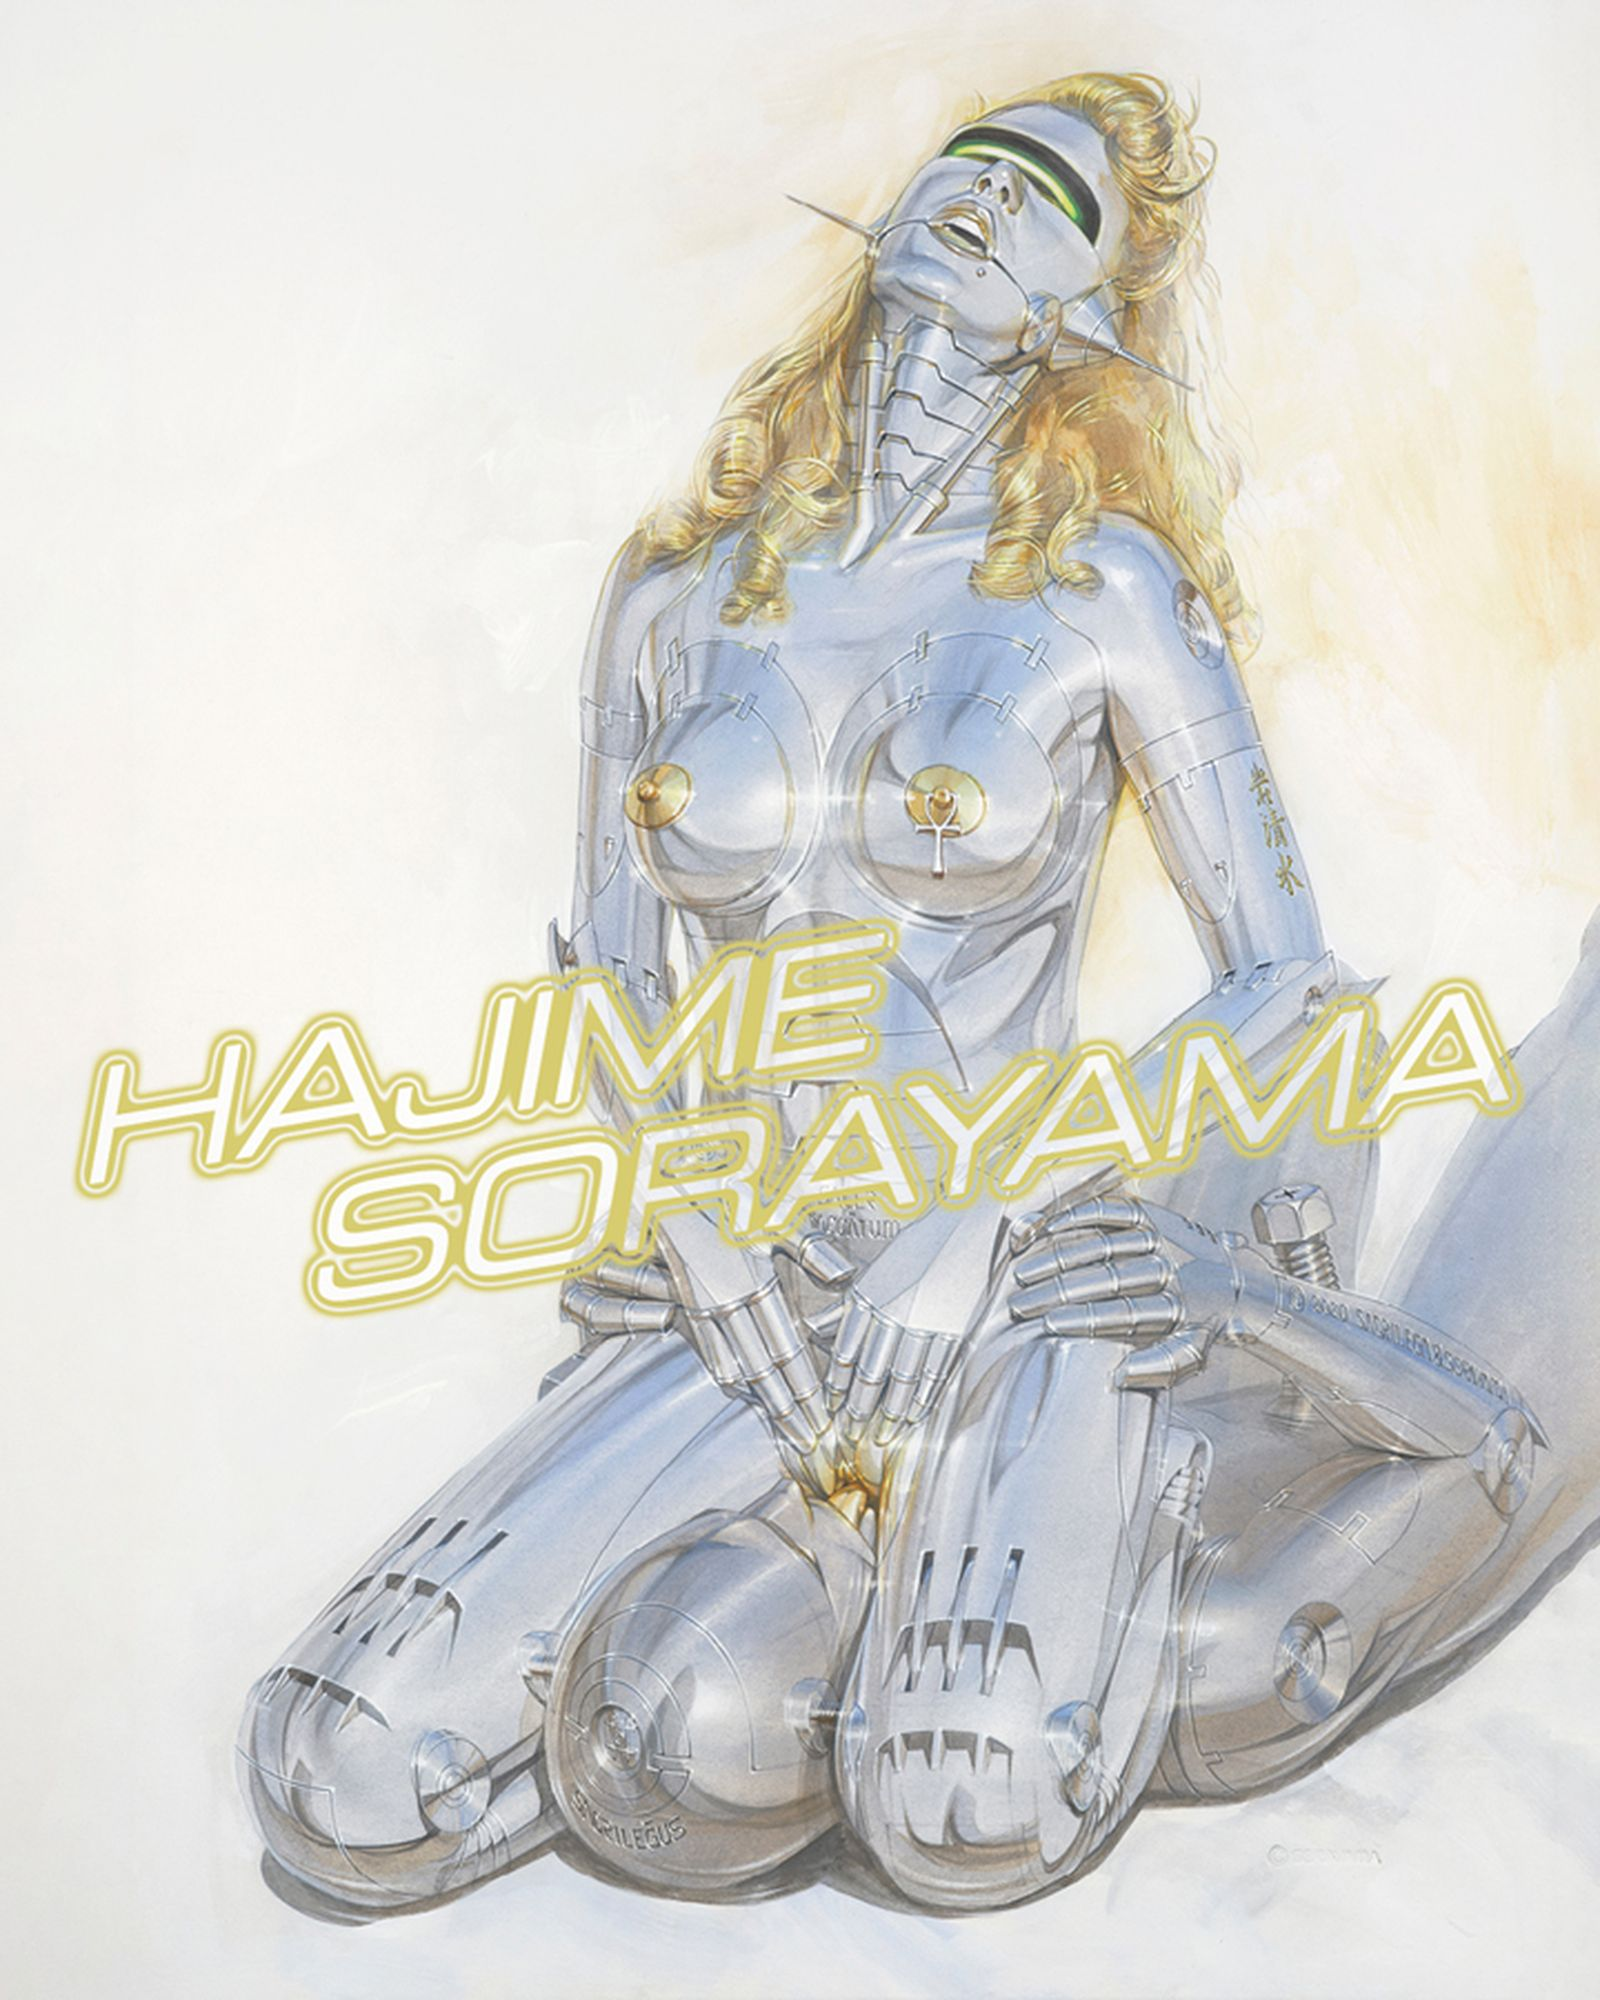 inside-the-erotic-sci-fi-grotto-of-hajime-sorayama_main3